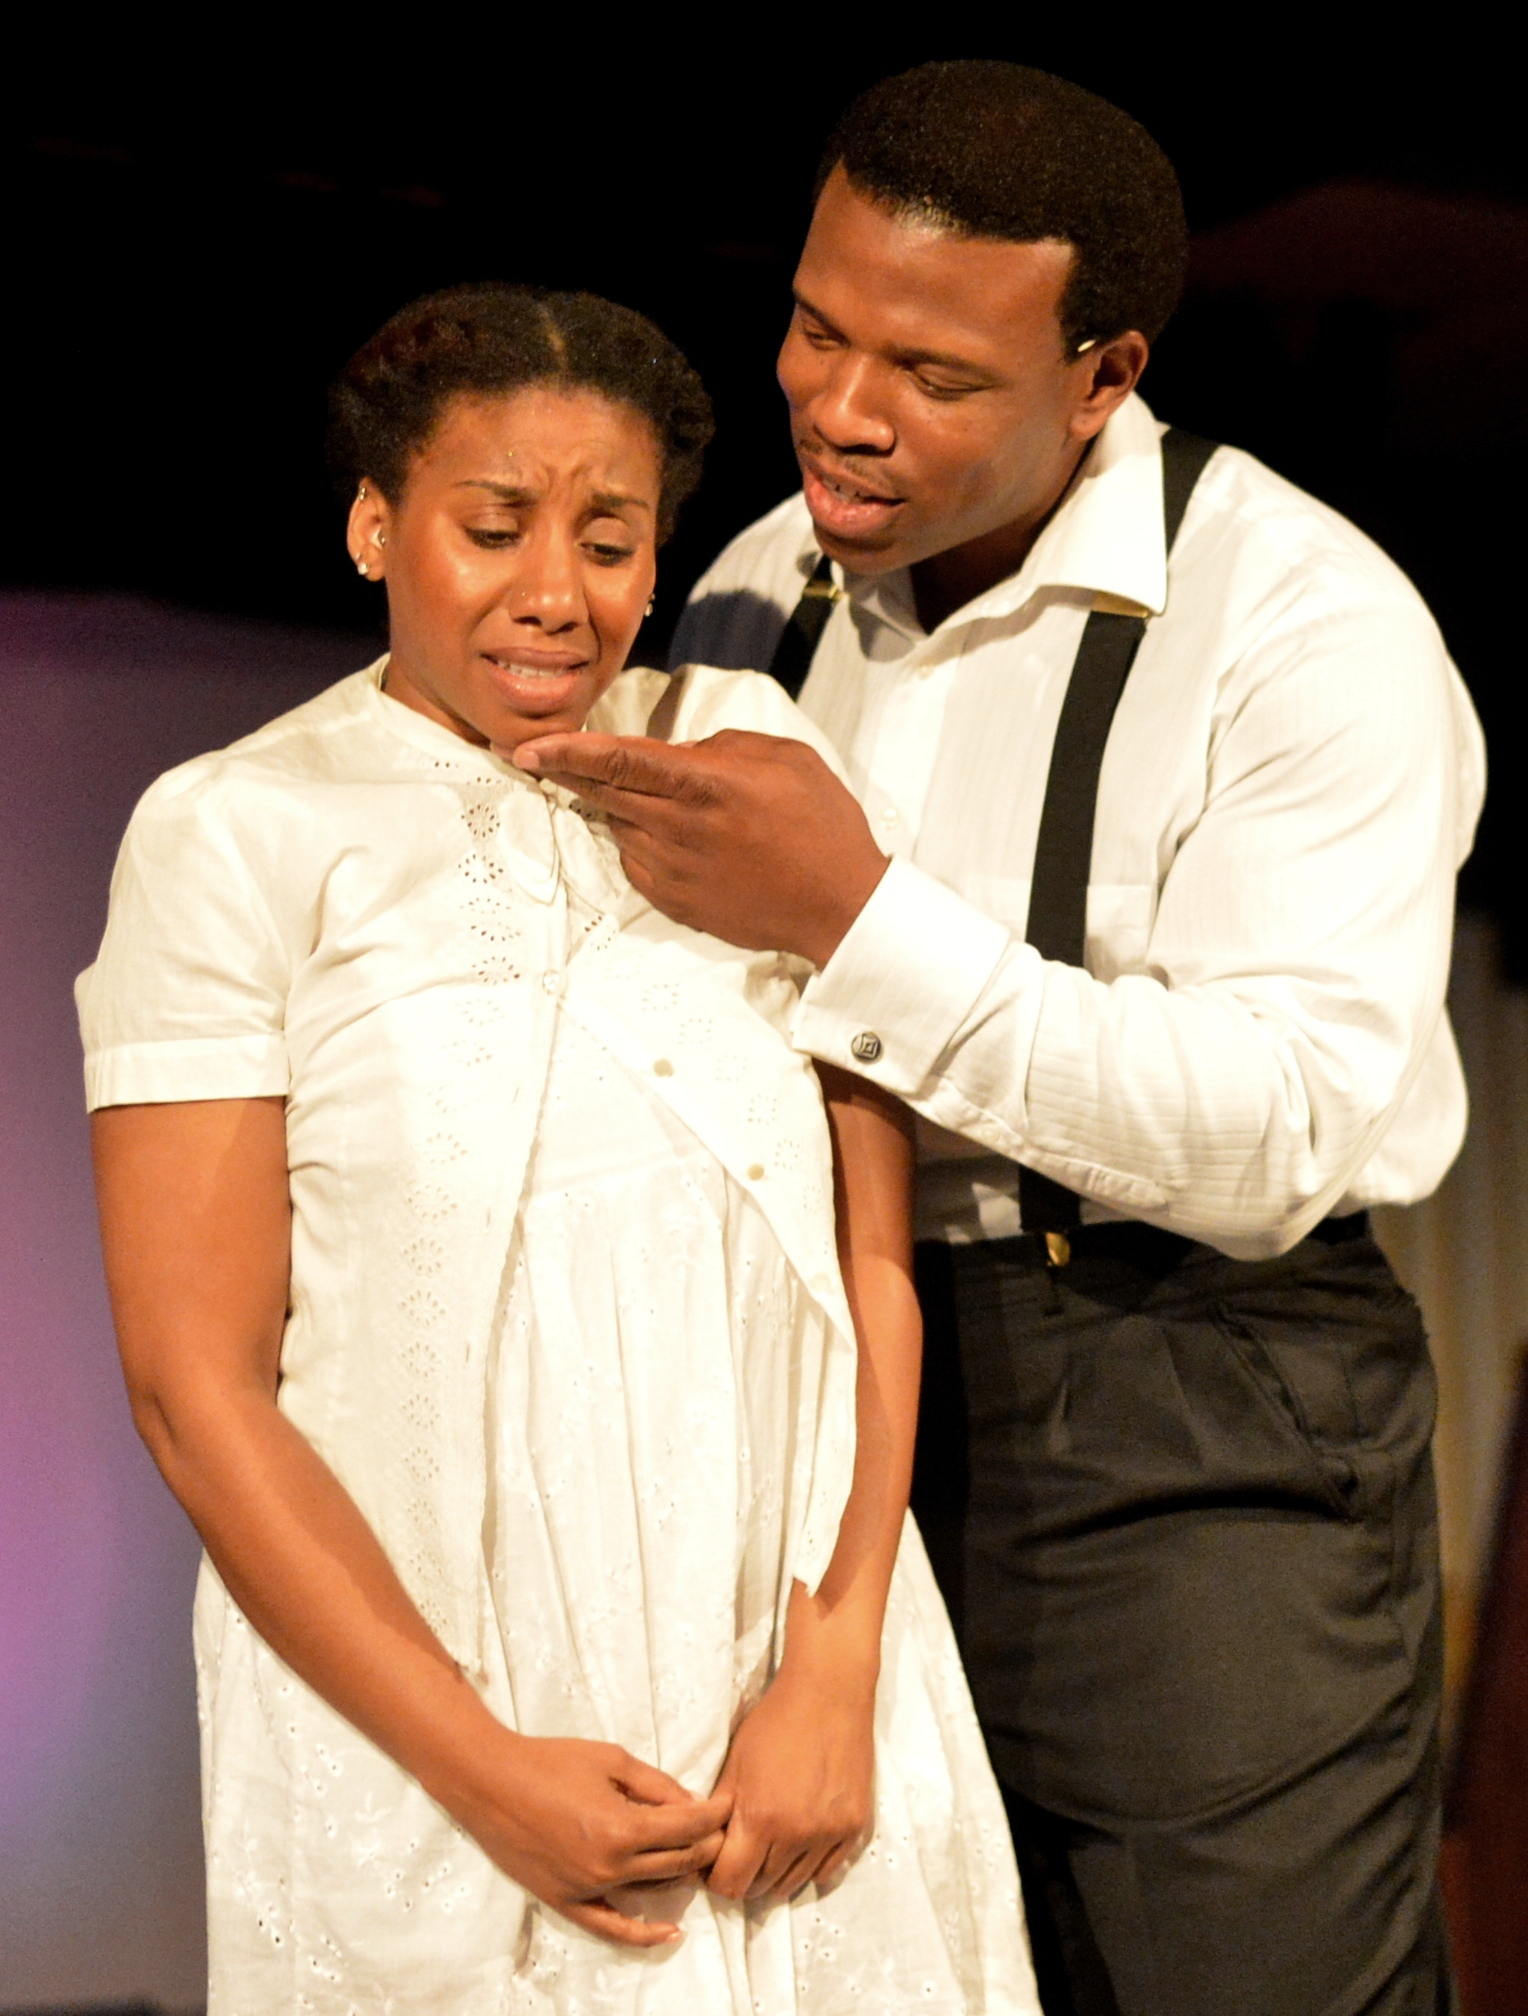 Giselle Nakhid as Netti and Damien A. Moses as Mister in The Color Purple